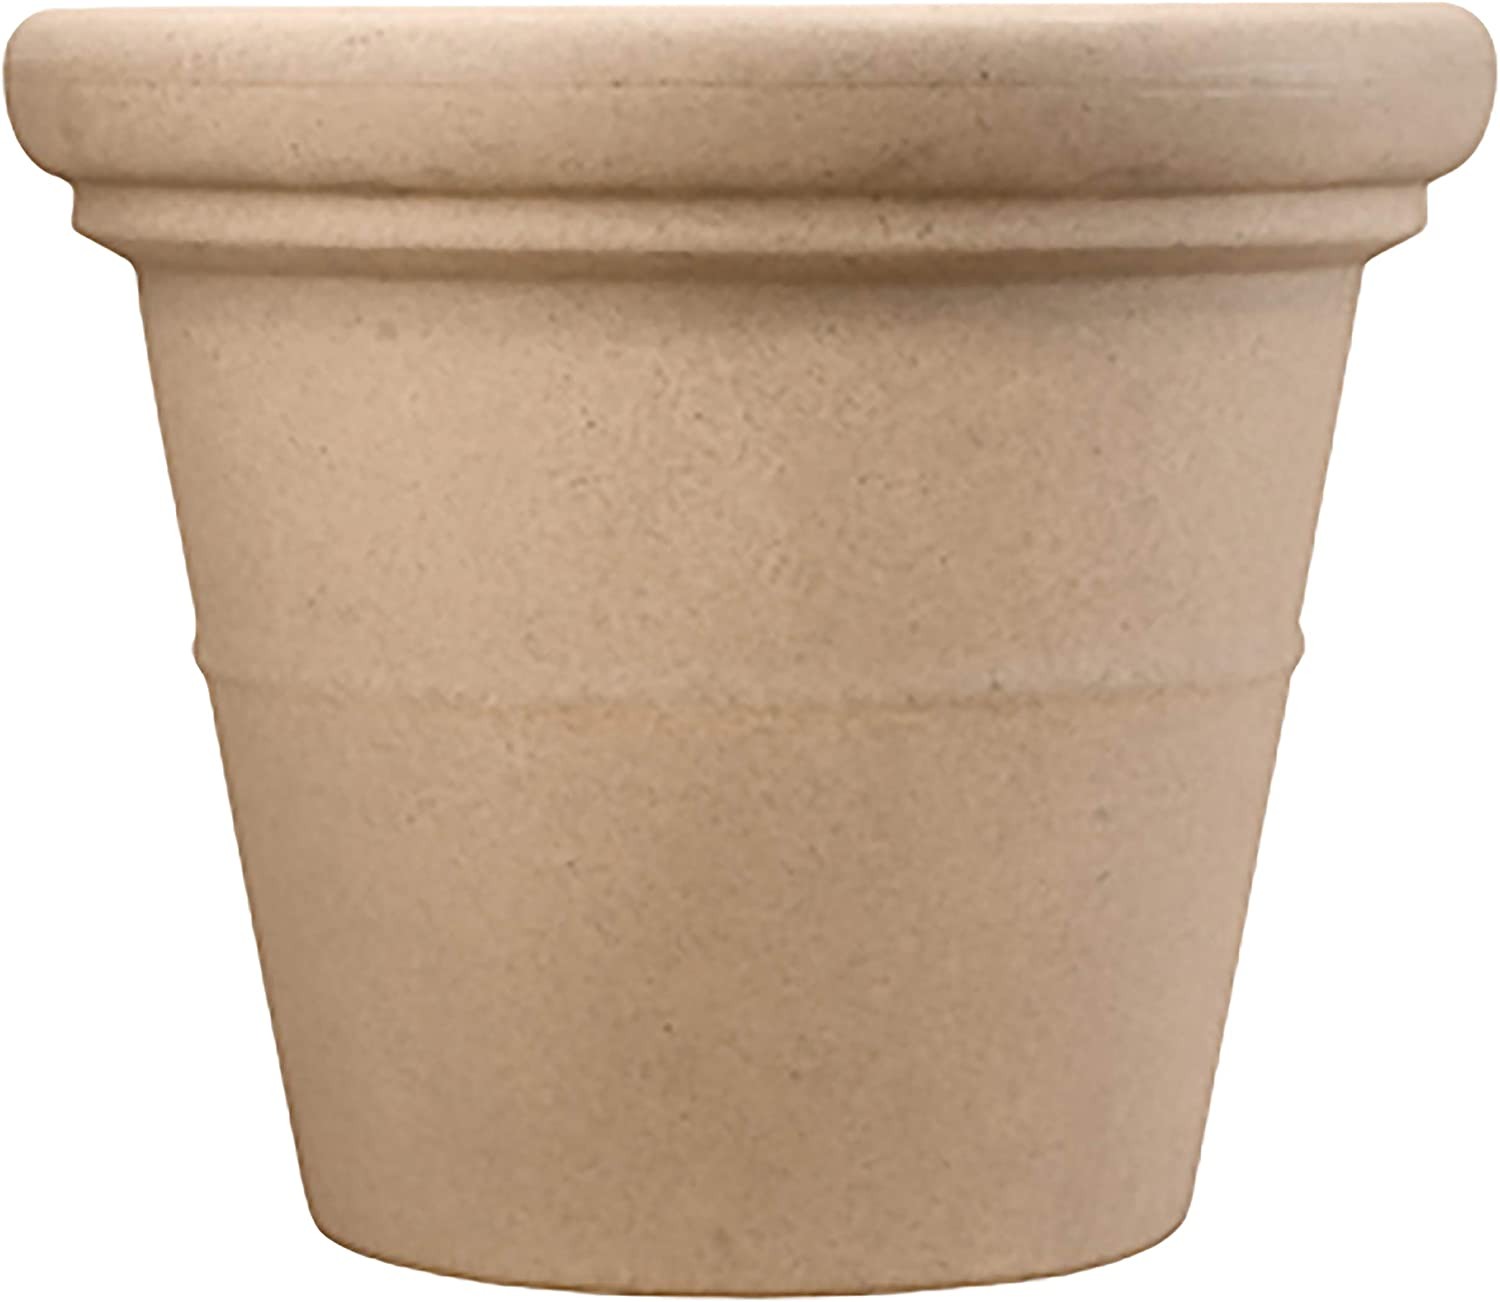 Terrazzo Round Planter Pot The Hc Companies 30 Decorative Flower Pot Planters For Houseplants Pairs W 30 Sandstone Terrazzo Saucer Stz30000a34 Sandstone Tea30000a34 Sandstone Flower Pot Garden Outdoor Amazon Com